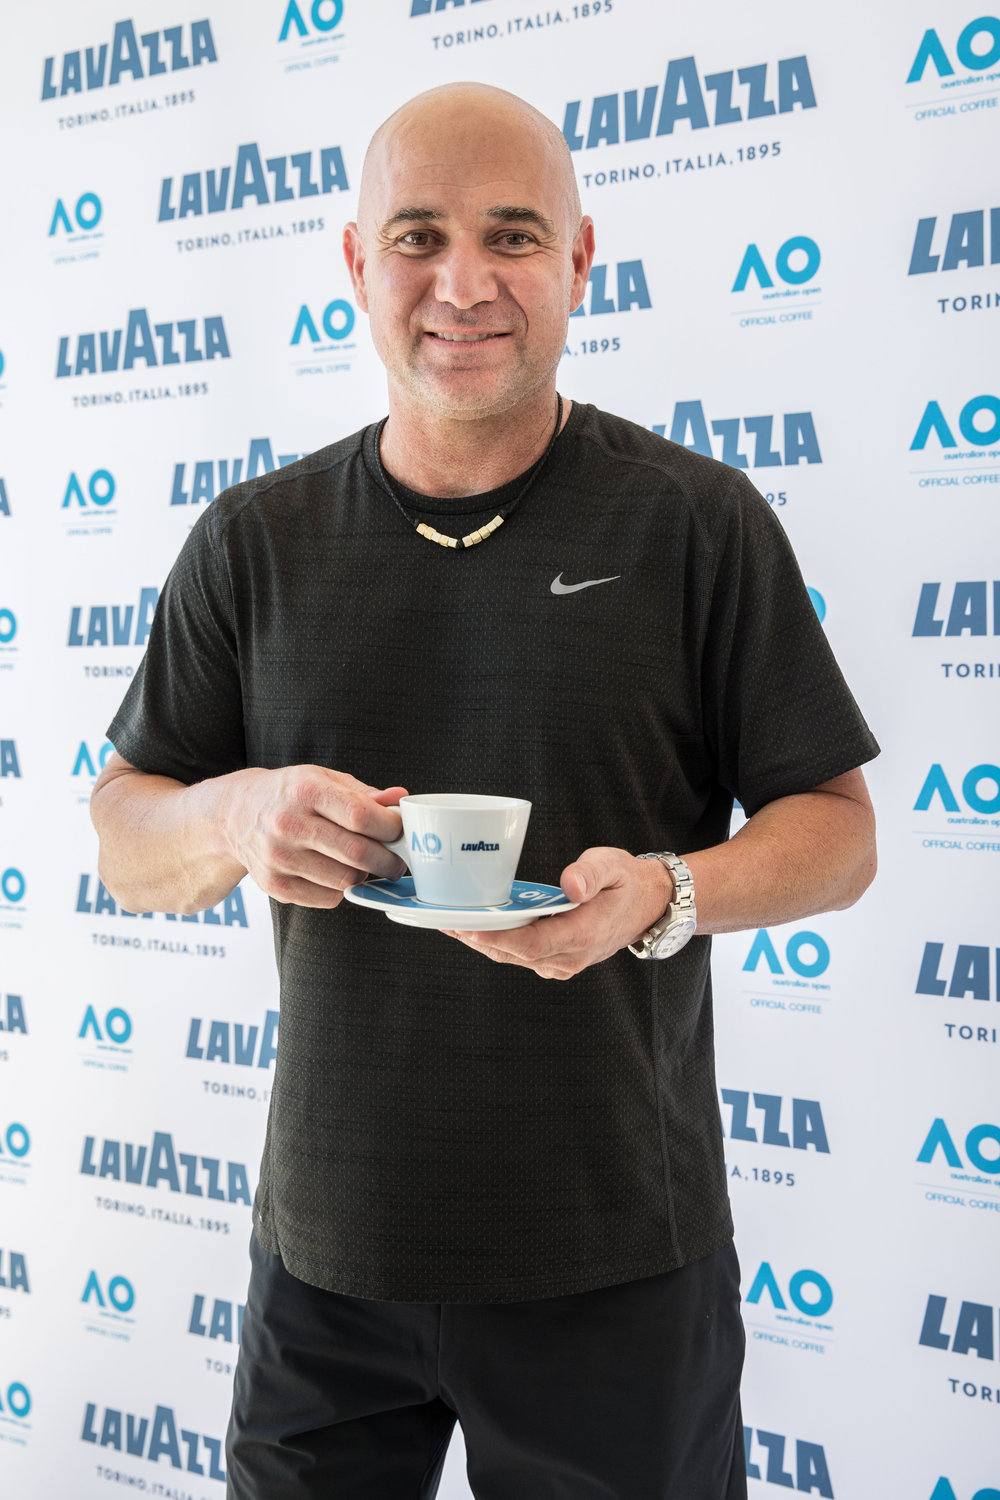 Andre Agassi_Lavazza_002.JPG